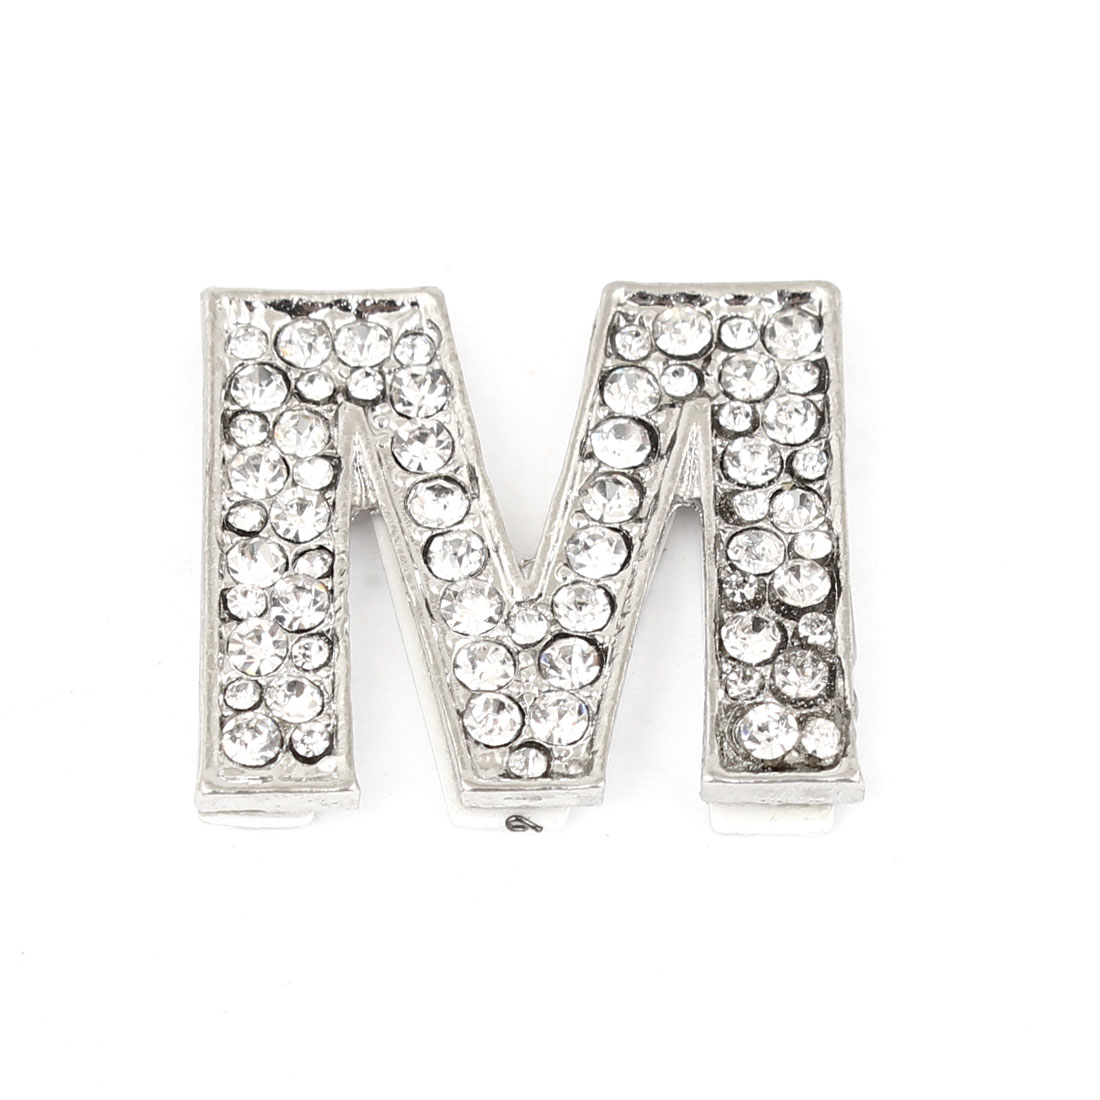 Rhinestones Detail Silver Tone Letter M Shaped Car Automobile Sticker Decoration